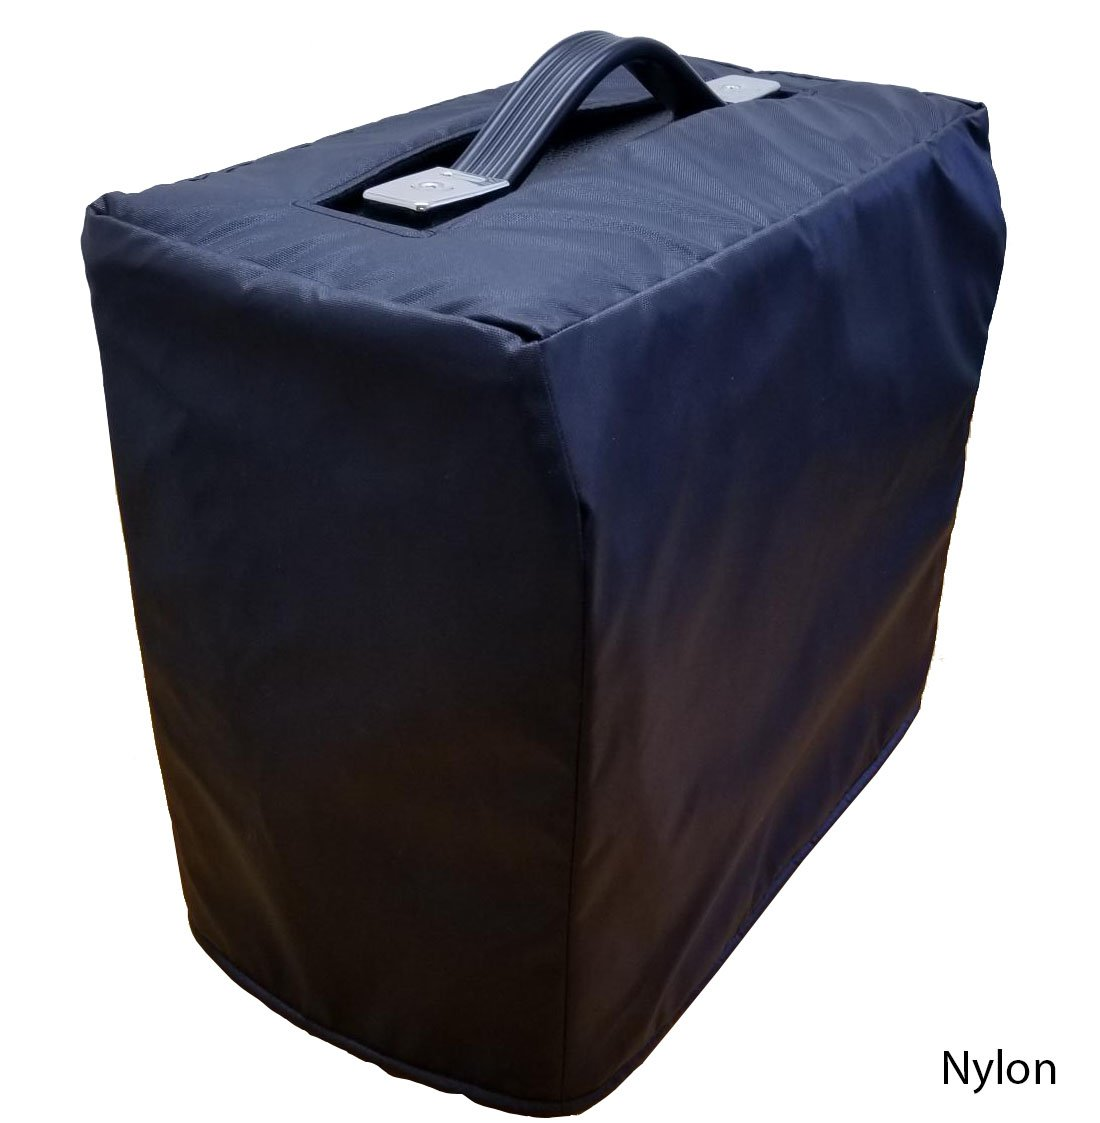 DCFY Guitar Amplifier Cover for Fender Champion 100 Amp | Nylon by Dust Covers For You!